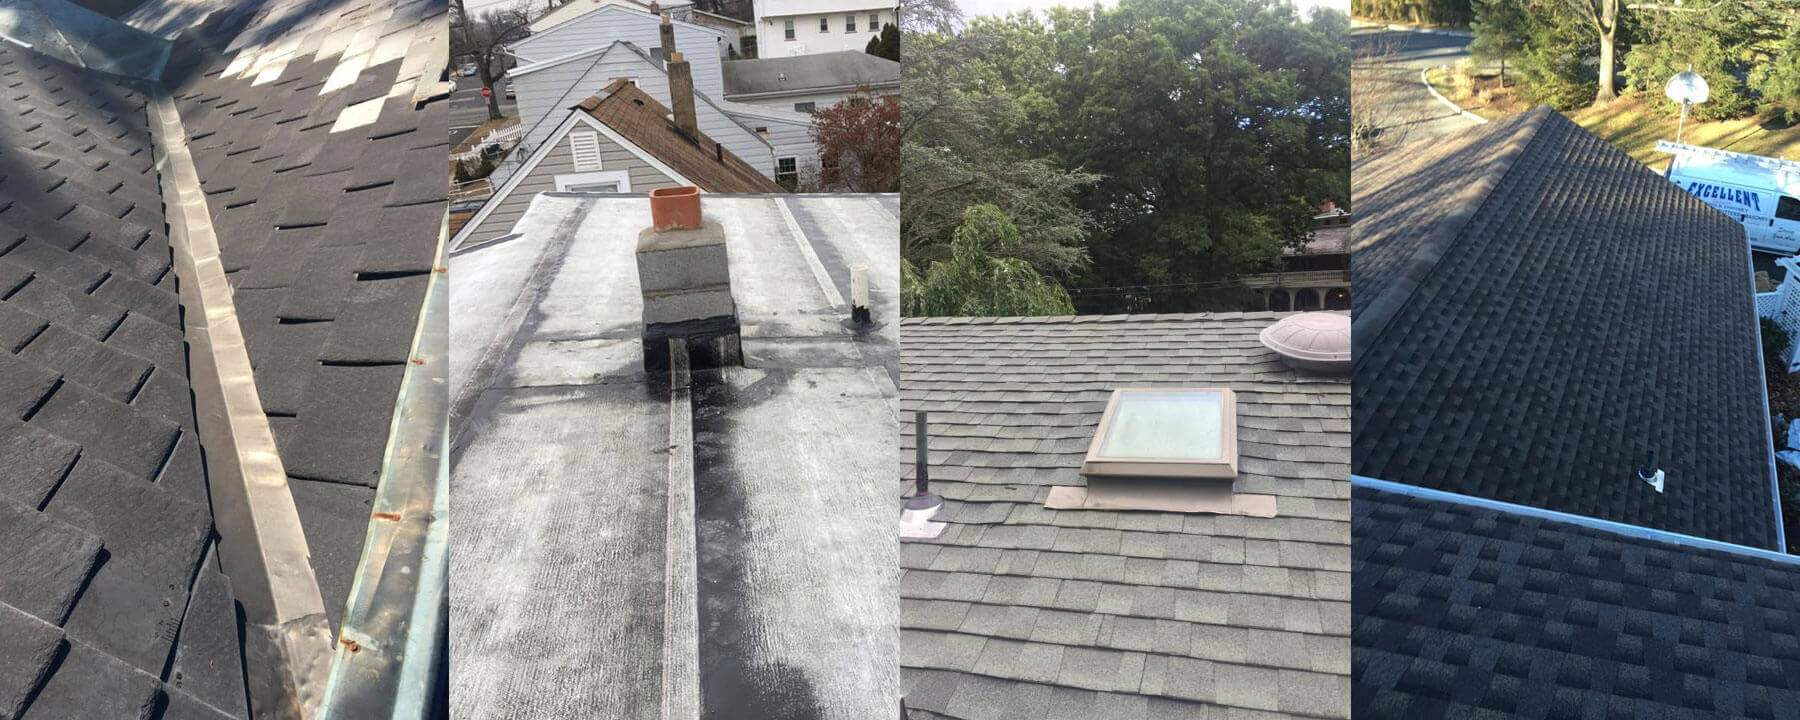 Roof Repair Near Carlstadt Nj Roof Replacement